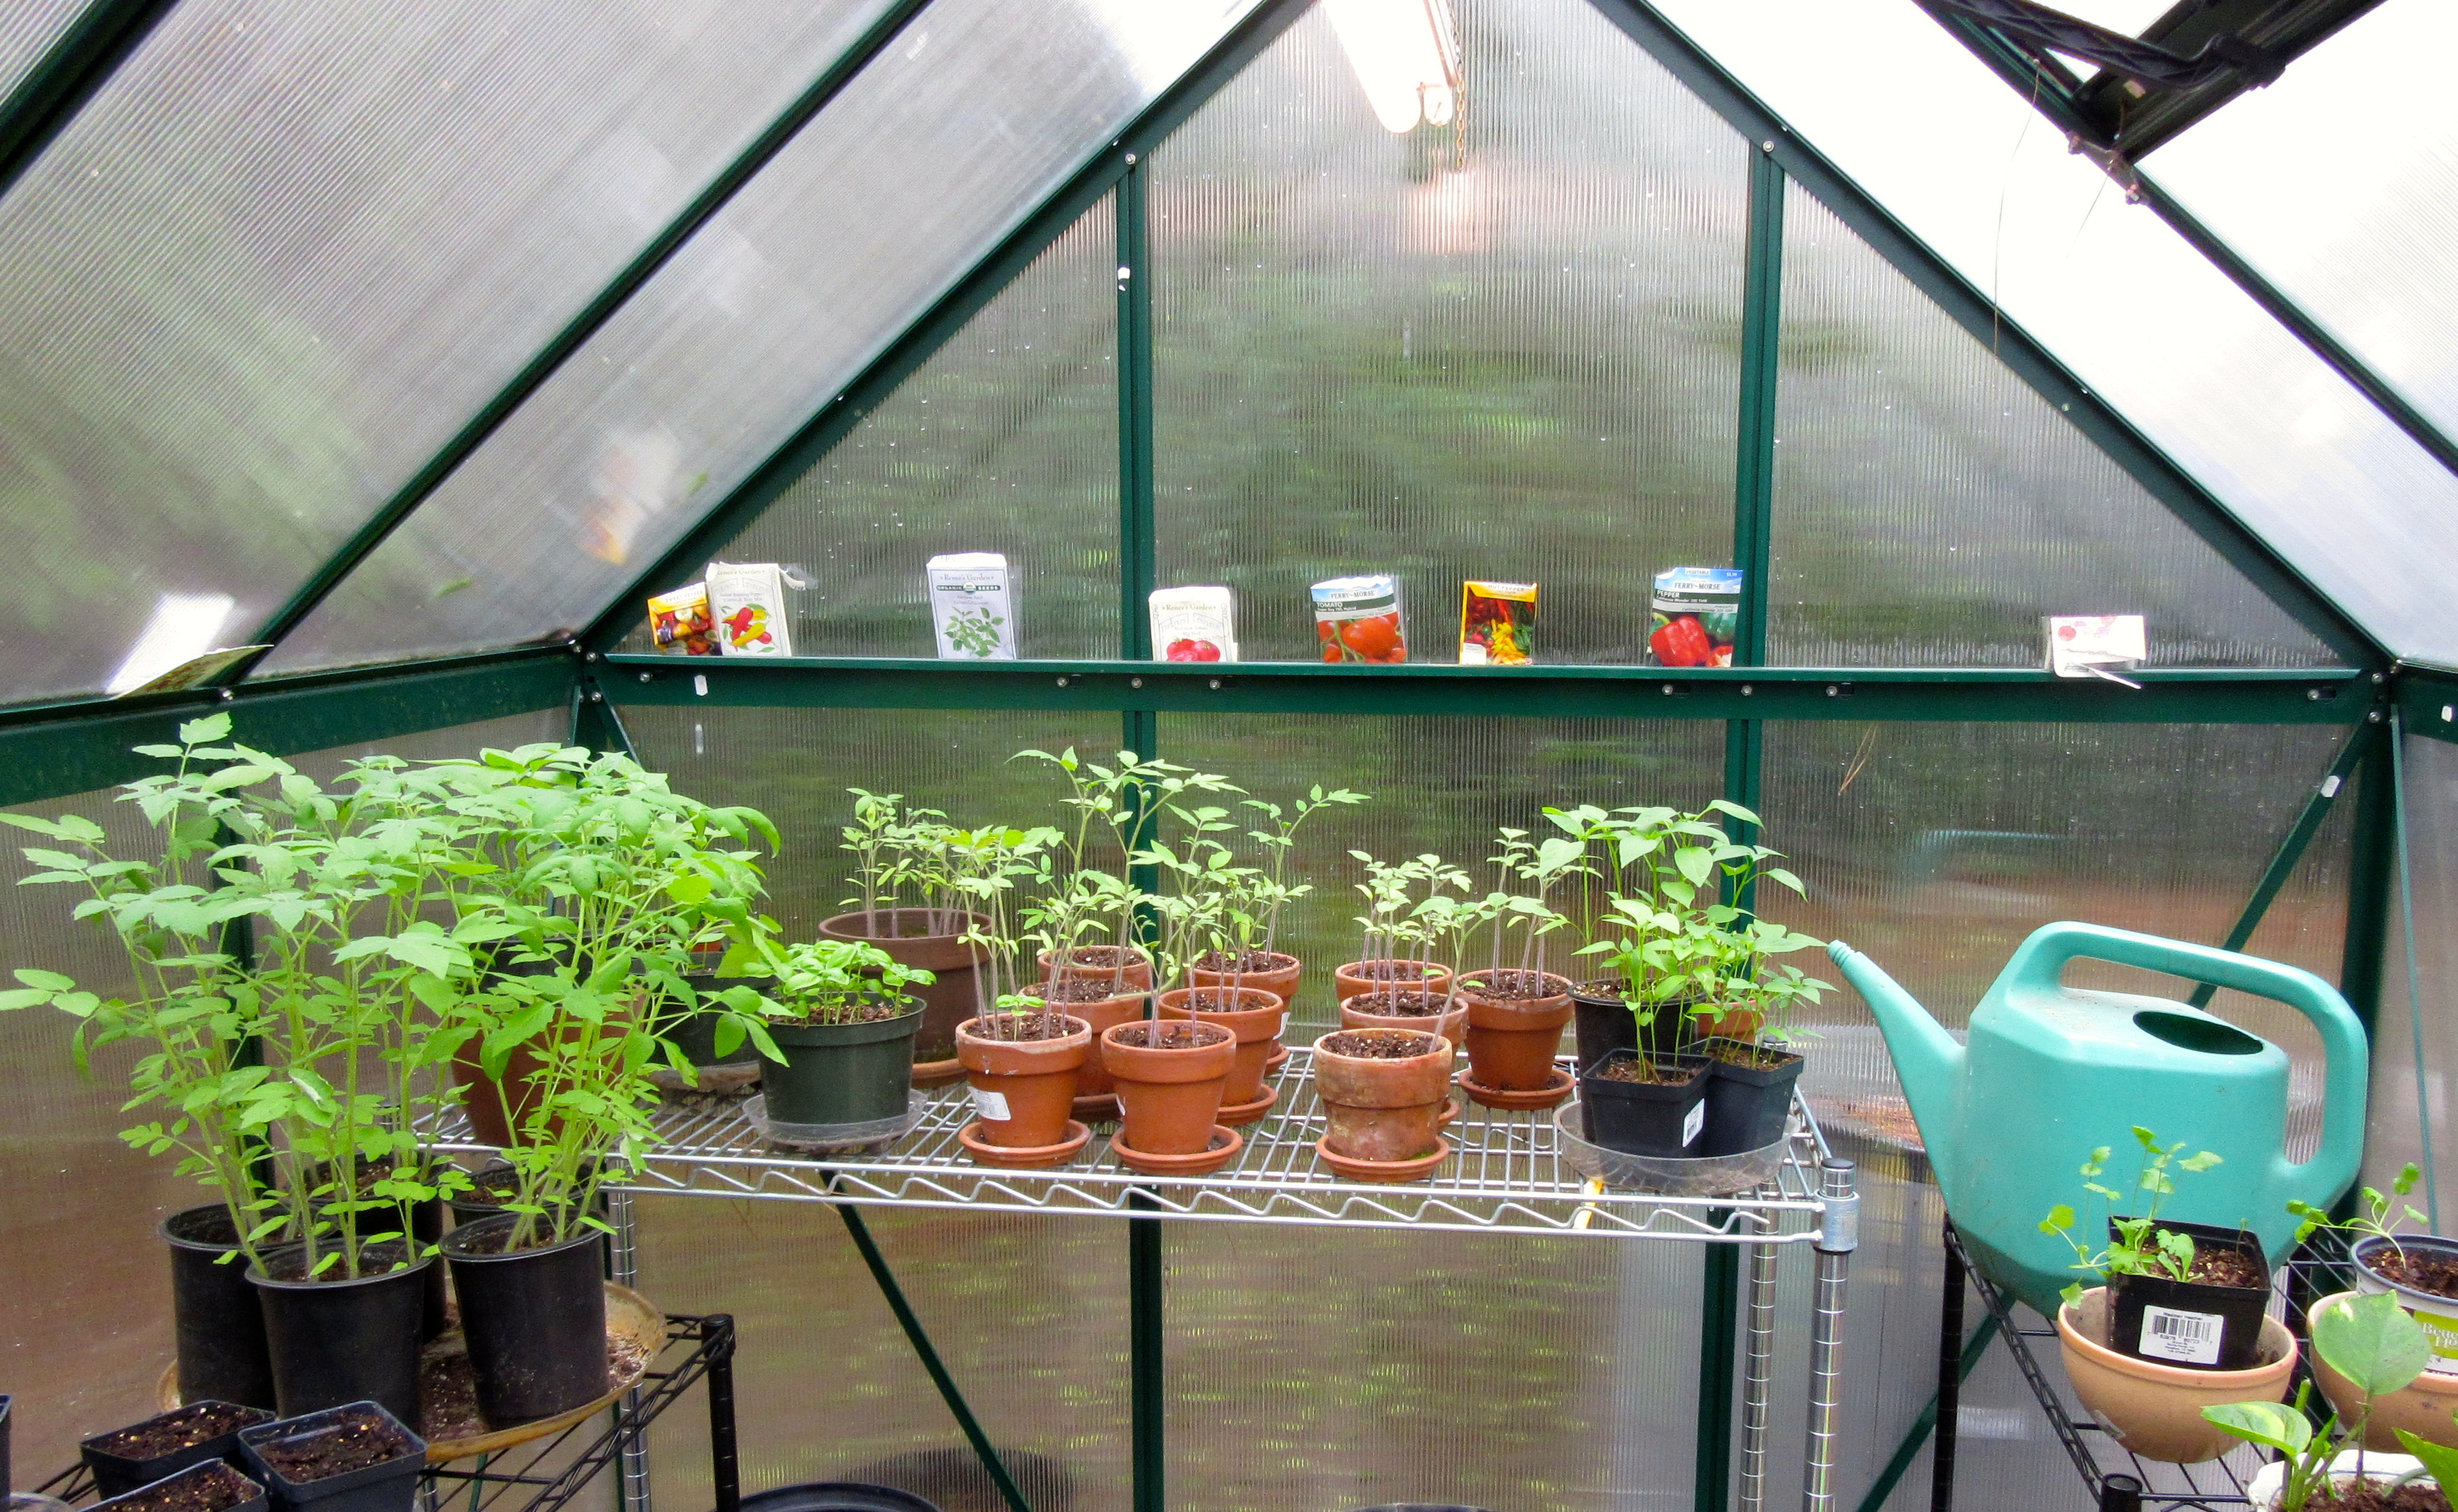 Dreaming of Summer; Glad for the Greenhouse